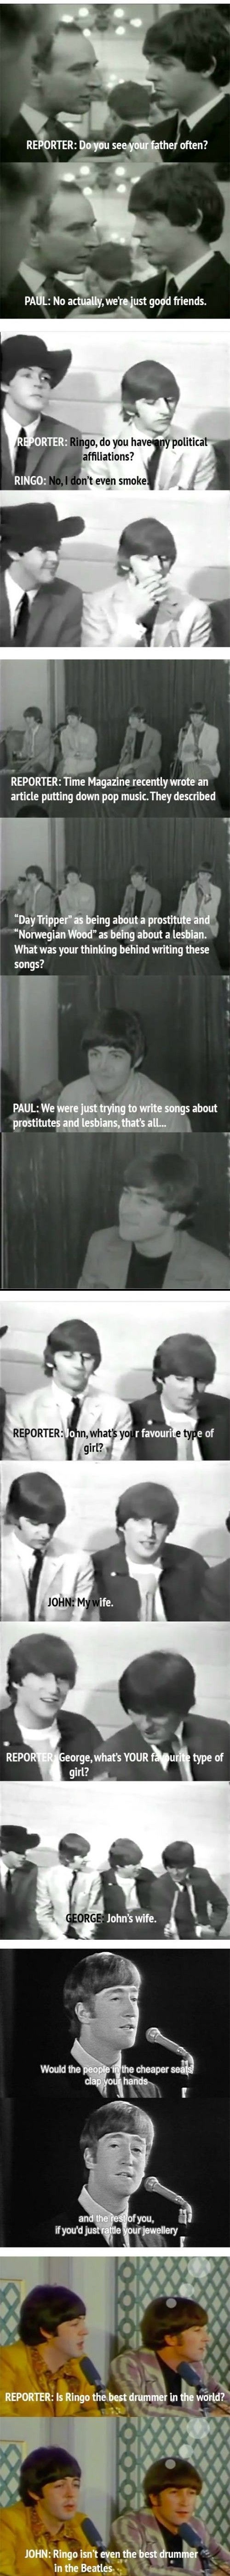 The Beatles Are One Of The Best Bands Of All Time. But After Seeing This, I Will Never Listen To Them The Same Again!